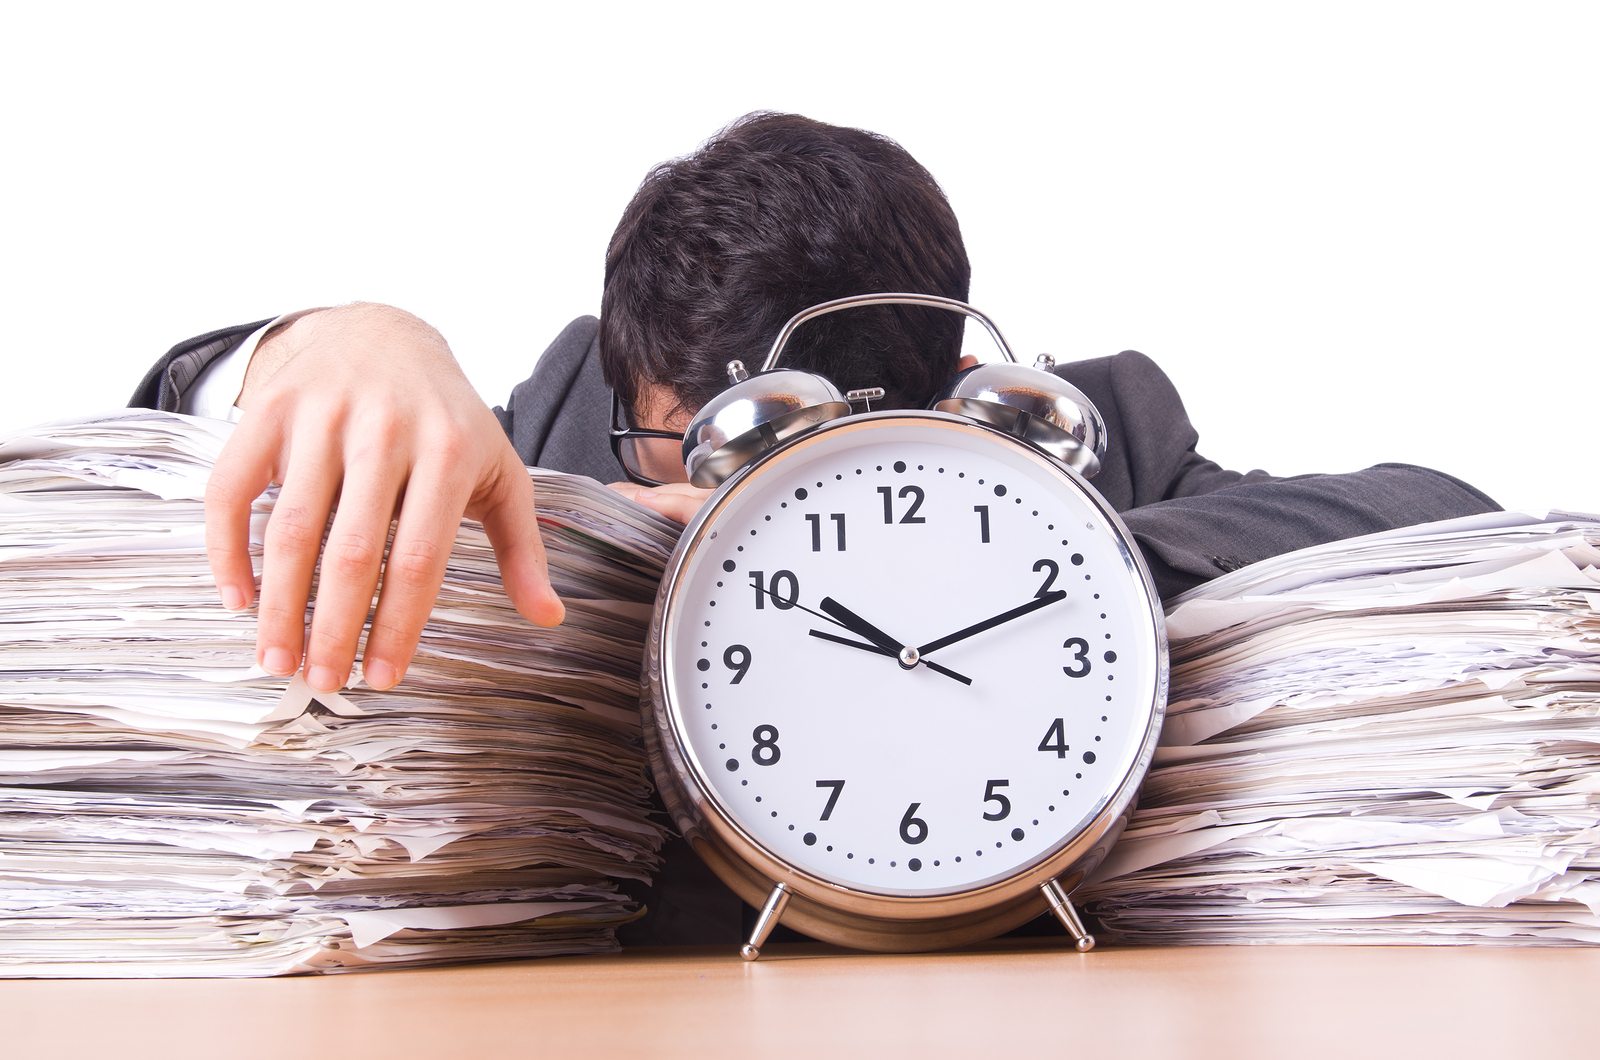 Top 5 Time Management Software For Windows 7 8 1 Download